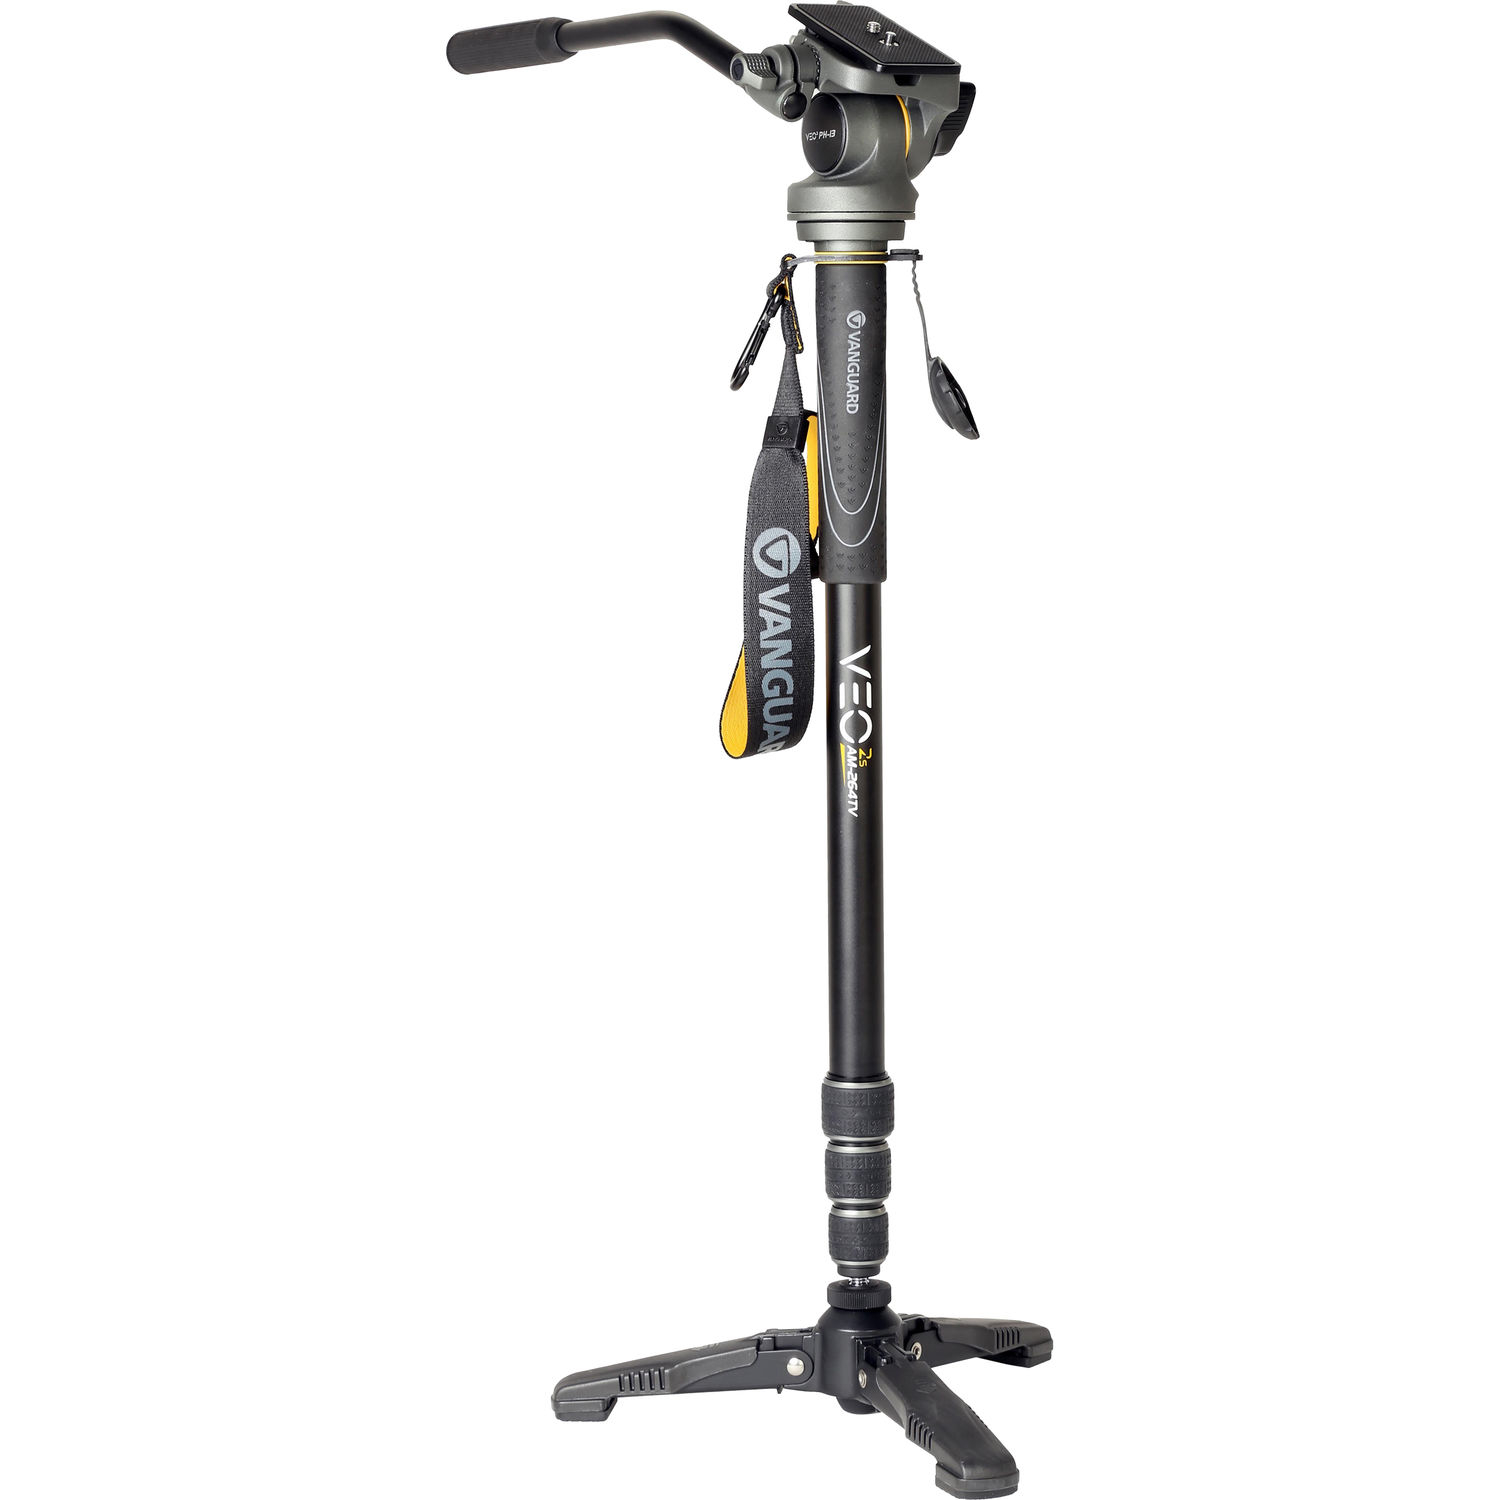 VANGUARD VEO 2S AM-264TV monopod